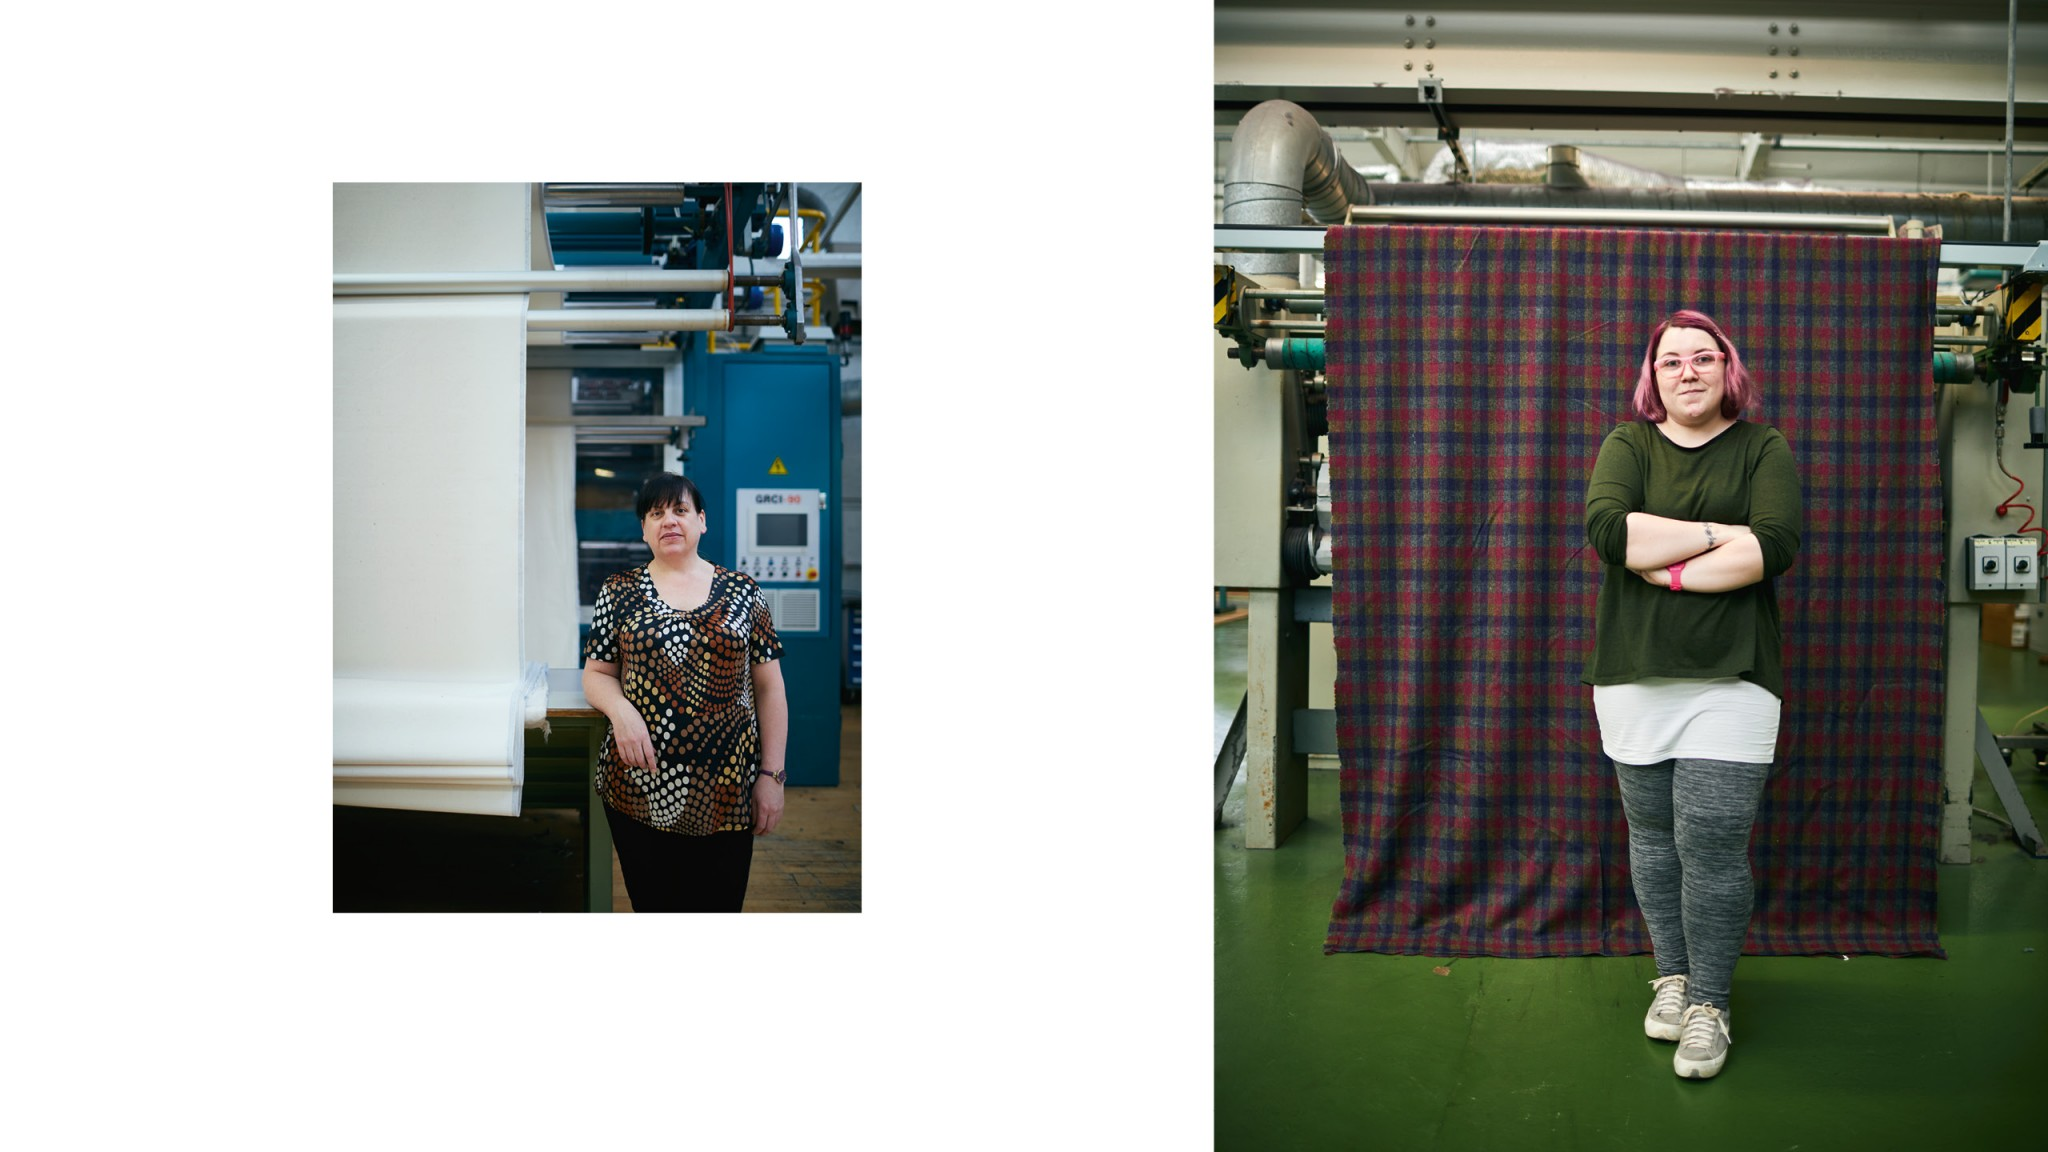 Two images, two different women standing next to fabric